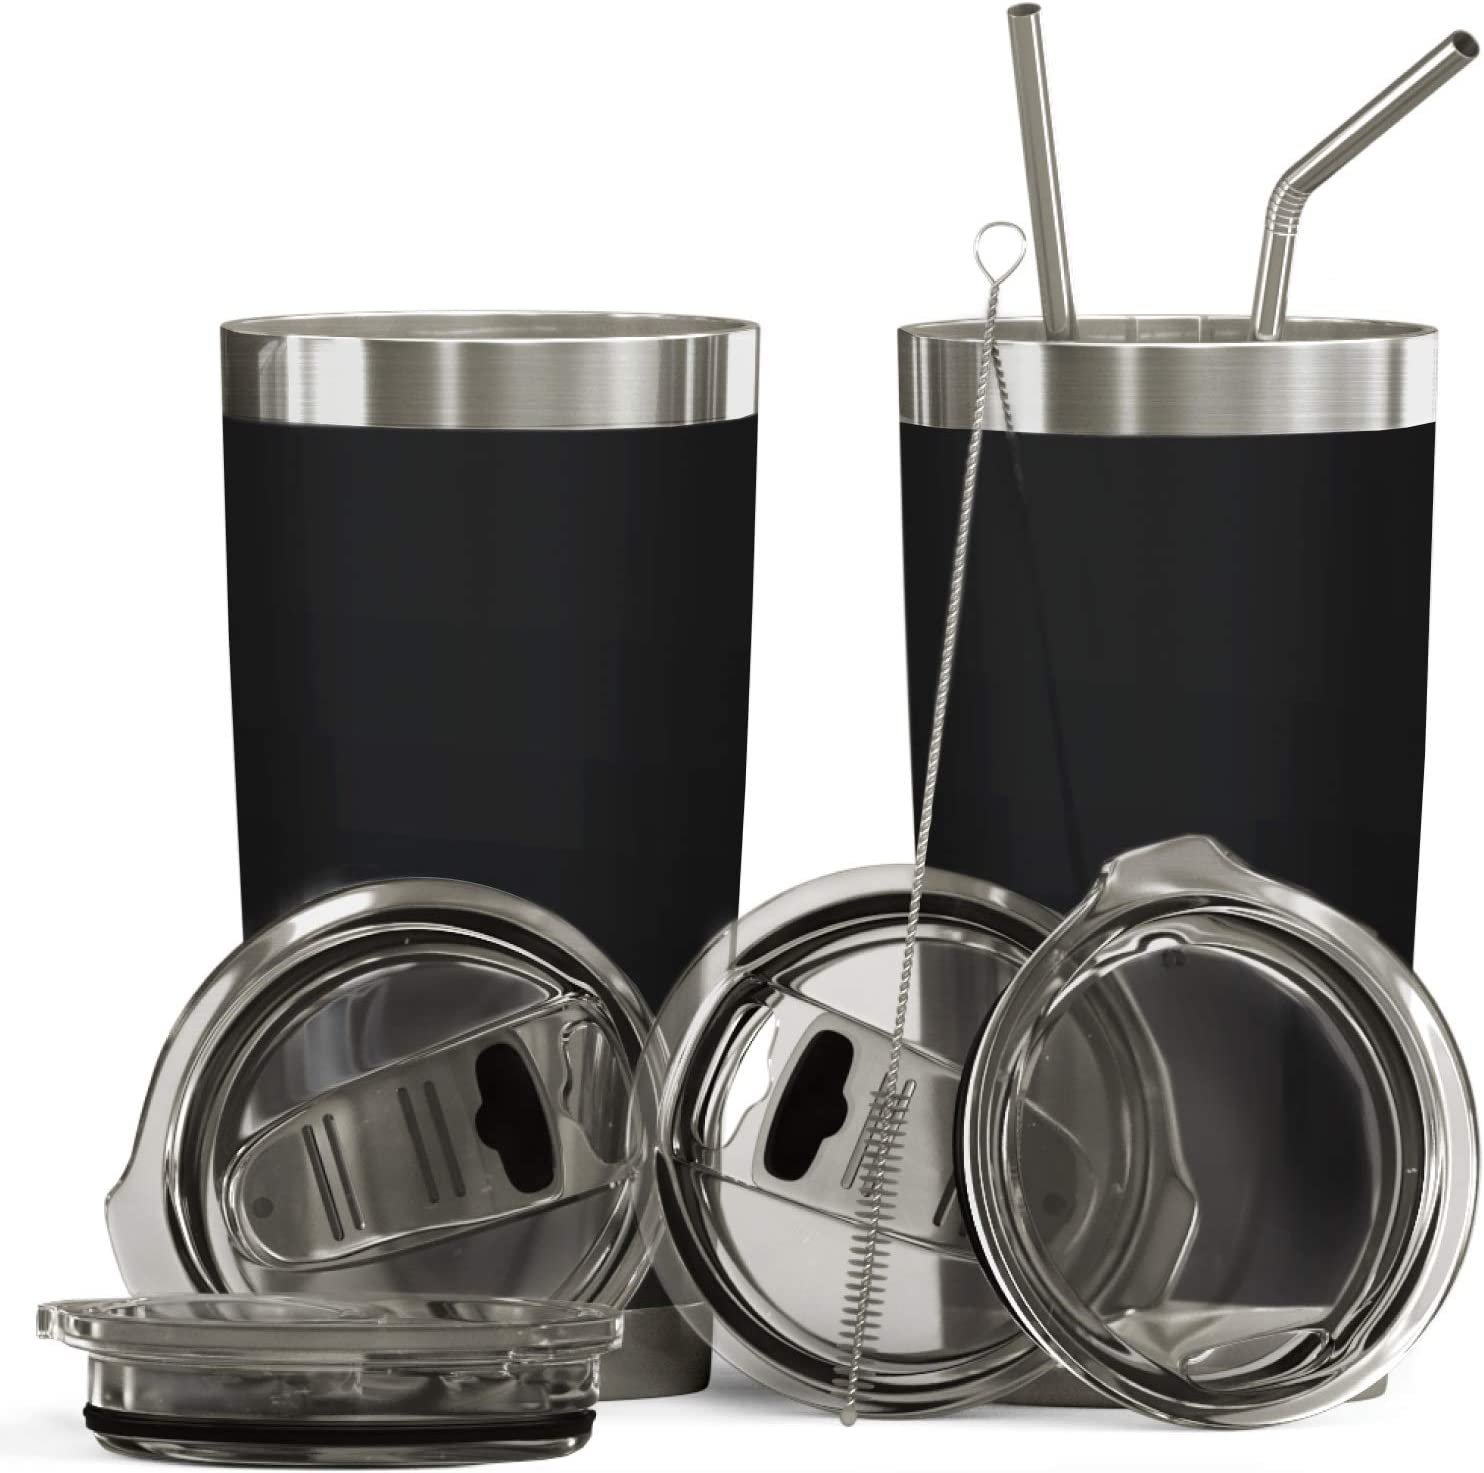 Bluepeak Double Wall Stainless Steel Vacuum Insulated Tumbler Set, 2-Pack. Includes Sipping Lids, Spill-Proof Sliding Lids, Straws, Cleaning Brush & Gift Box (20oz, Black)